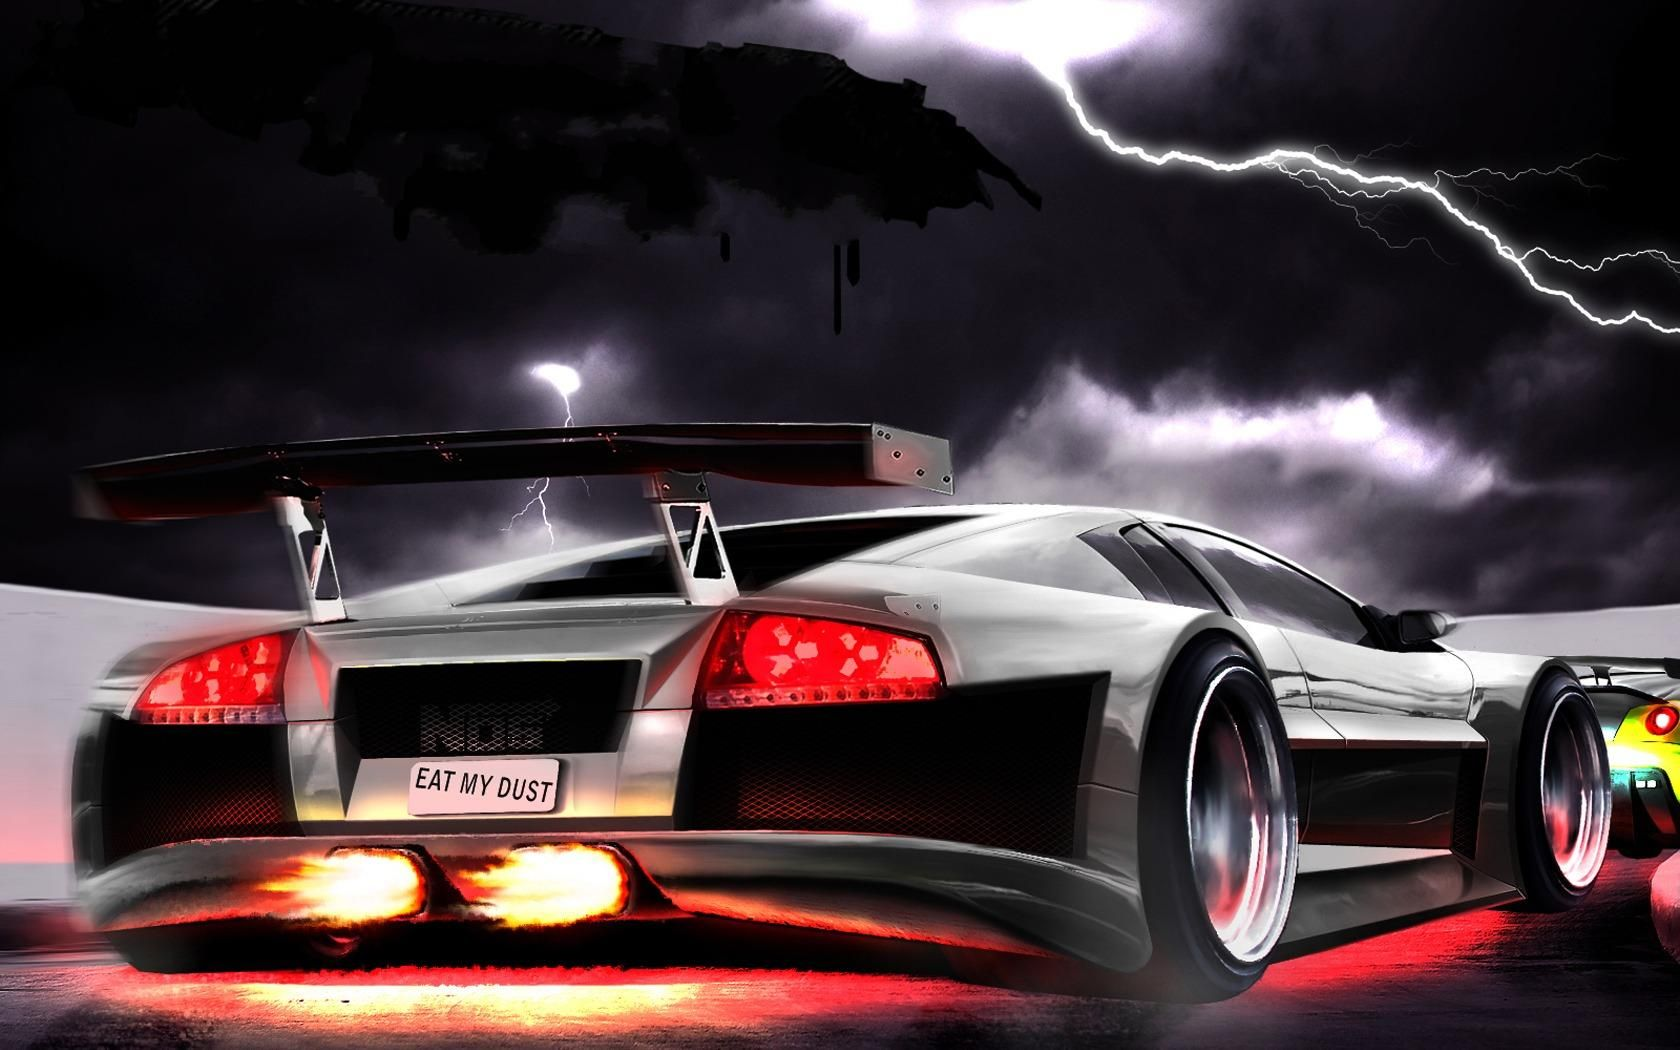 Pc Wallpapers Cars Wallpaper Cave Adorable Wallpapers